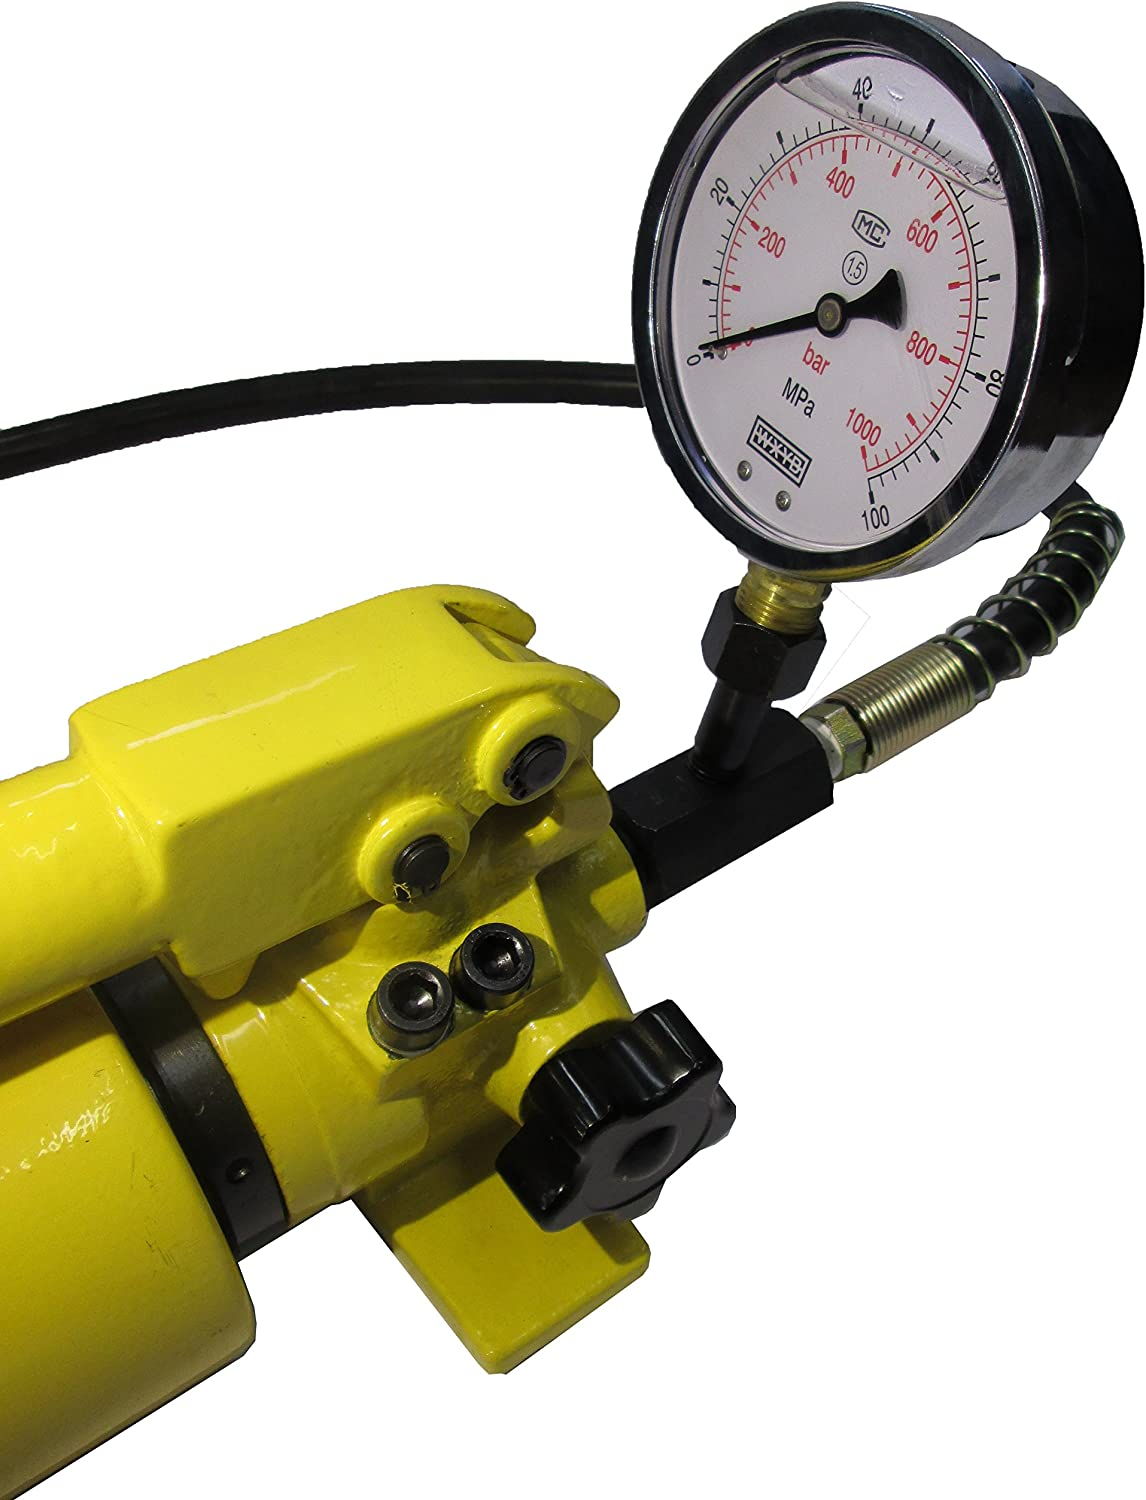 B-700AB Hydraulic Hand Pump Two Speed with Pressure Gauge 10000 psi - 165 in3